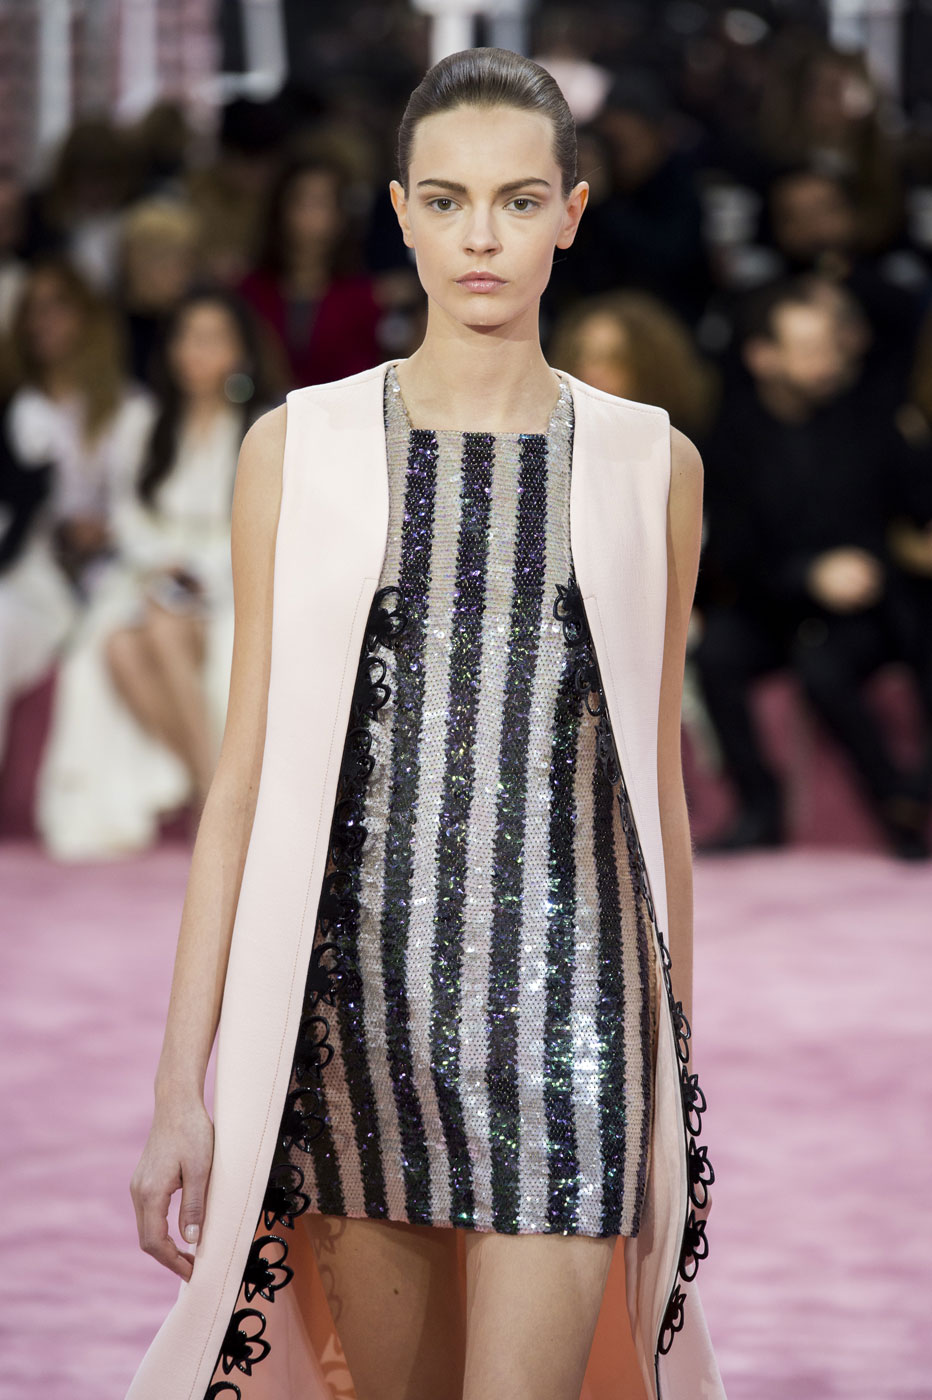 Christian-Dior-fashion-runway-show-haute-couture-paris-spring-summer-2015-the-impression-087